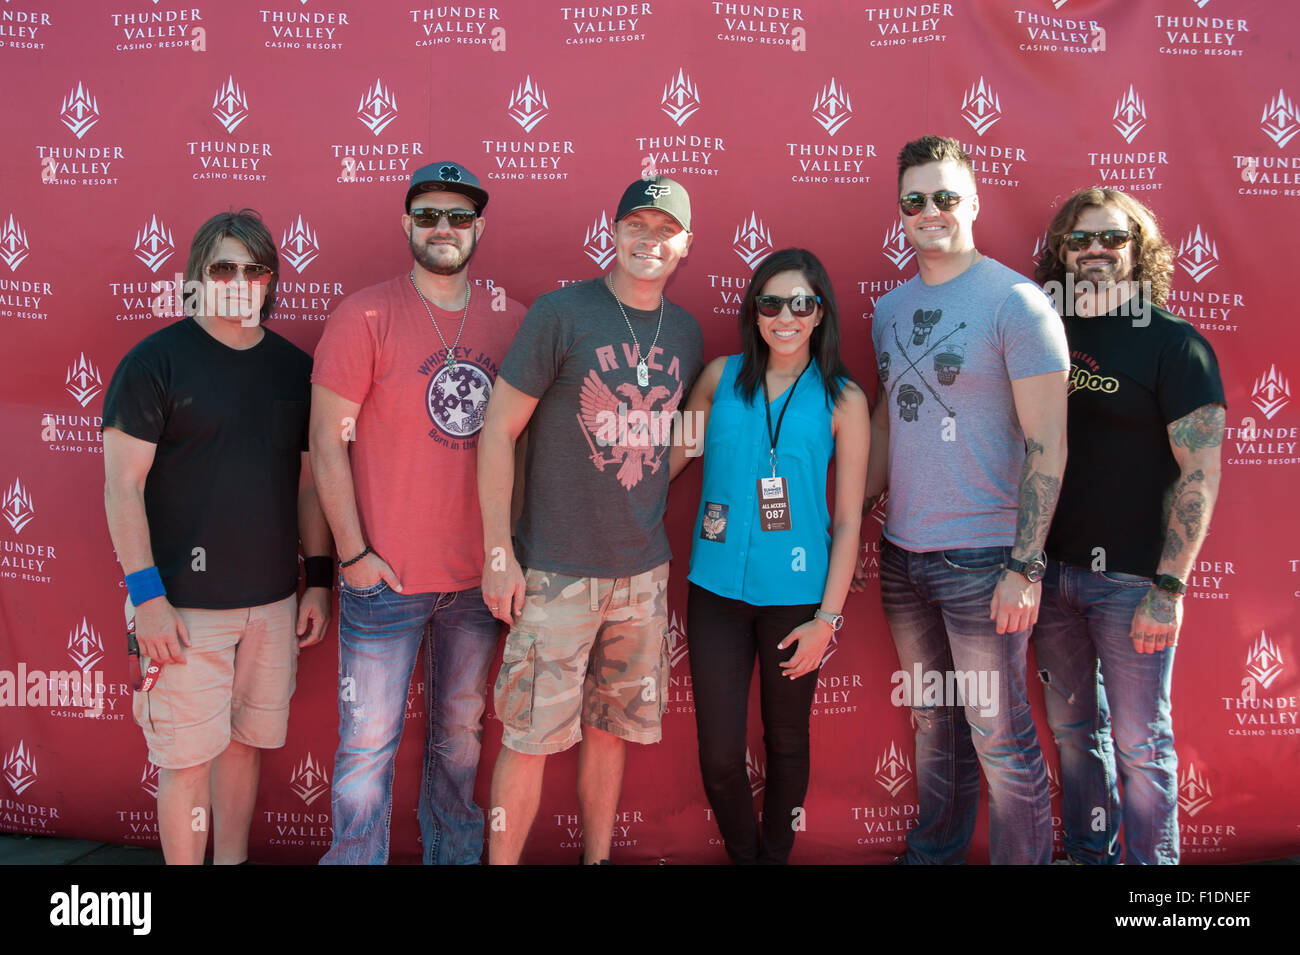 Lincoln ca august 29 3 doors down poses for meet and greets at lincoln ca august 29 3 doors down poses for meet and greets at thunder valley casino resort in in lincoln california on aug m4hsunfo